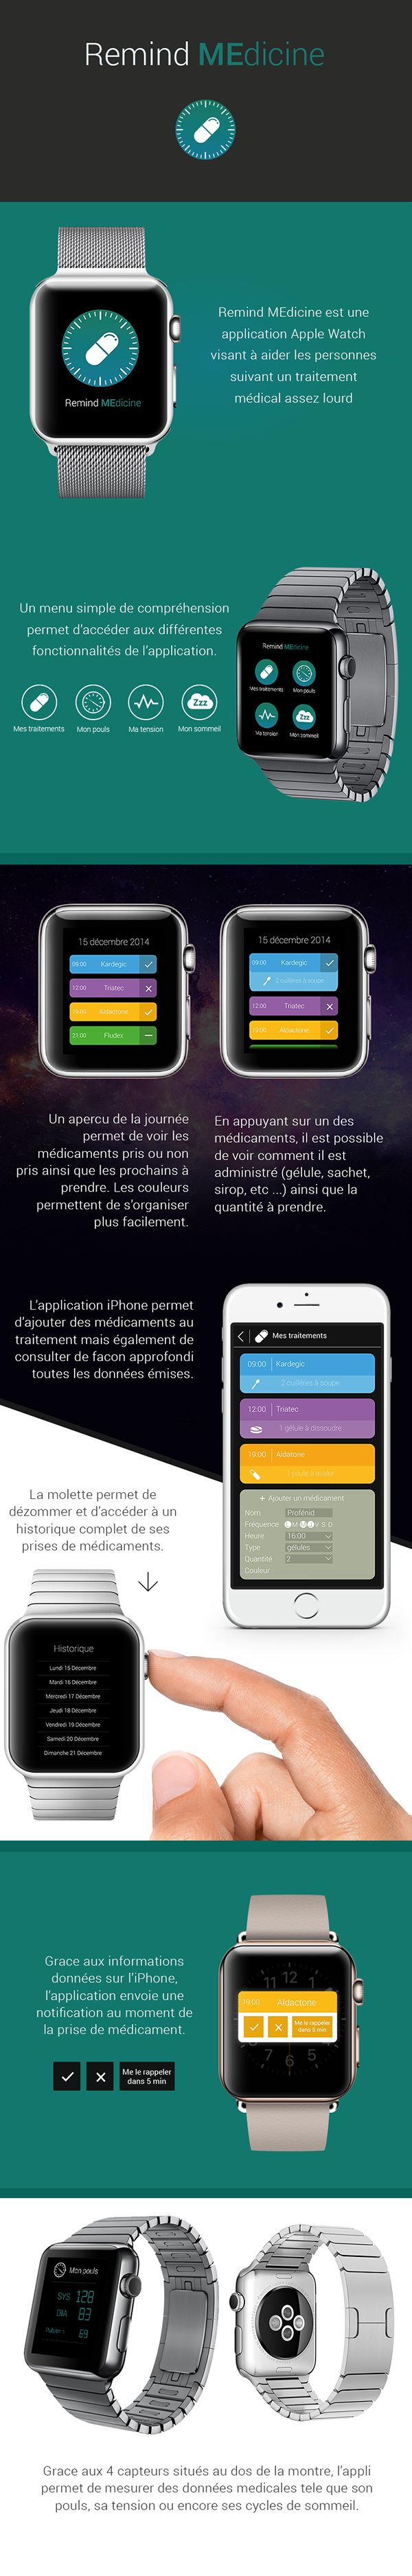 Although I don't read french the idea behind this is pretty self-explanatory. I like that this is a program that reminds users to take their medicine. Many people fail to take their medicine  when needed so something like this would be extremely useful. It also has a mobile version as well! You can set the time and each medication individually which would be